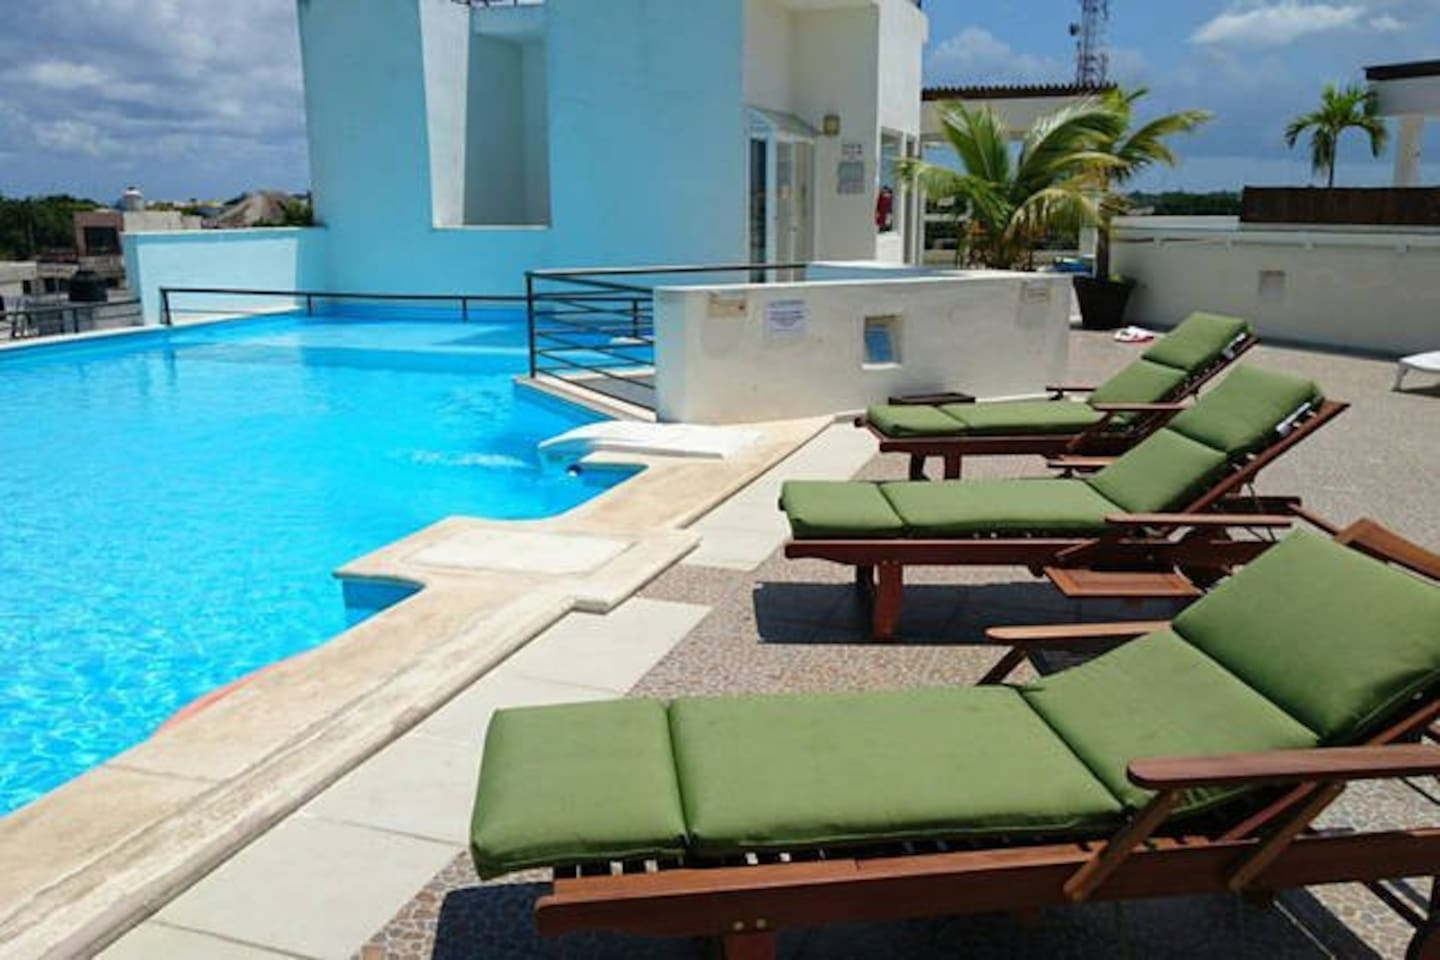 """<div style=""""text-align: start;""""><span style=""""font-size: 16px; white-space: normal;"""">3 Bedroom, 3 Bath Penthouse Playa del Carmen, Quintana Roo 77710, Mexico</span></div>"""